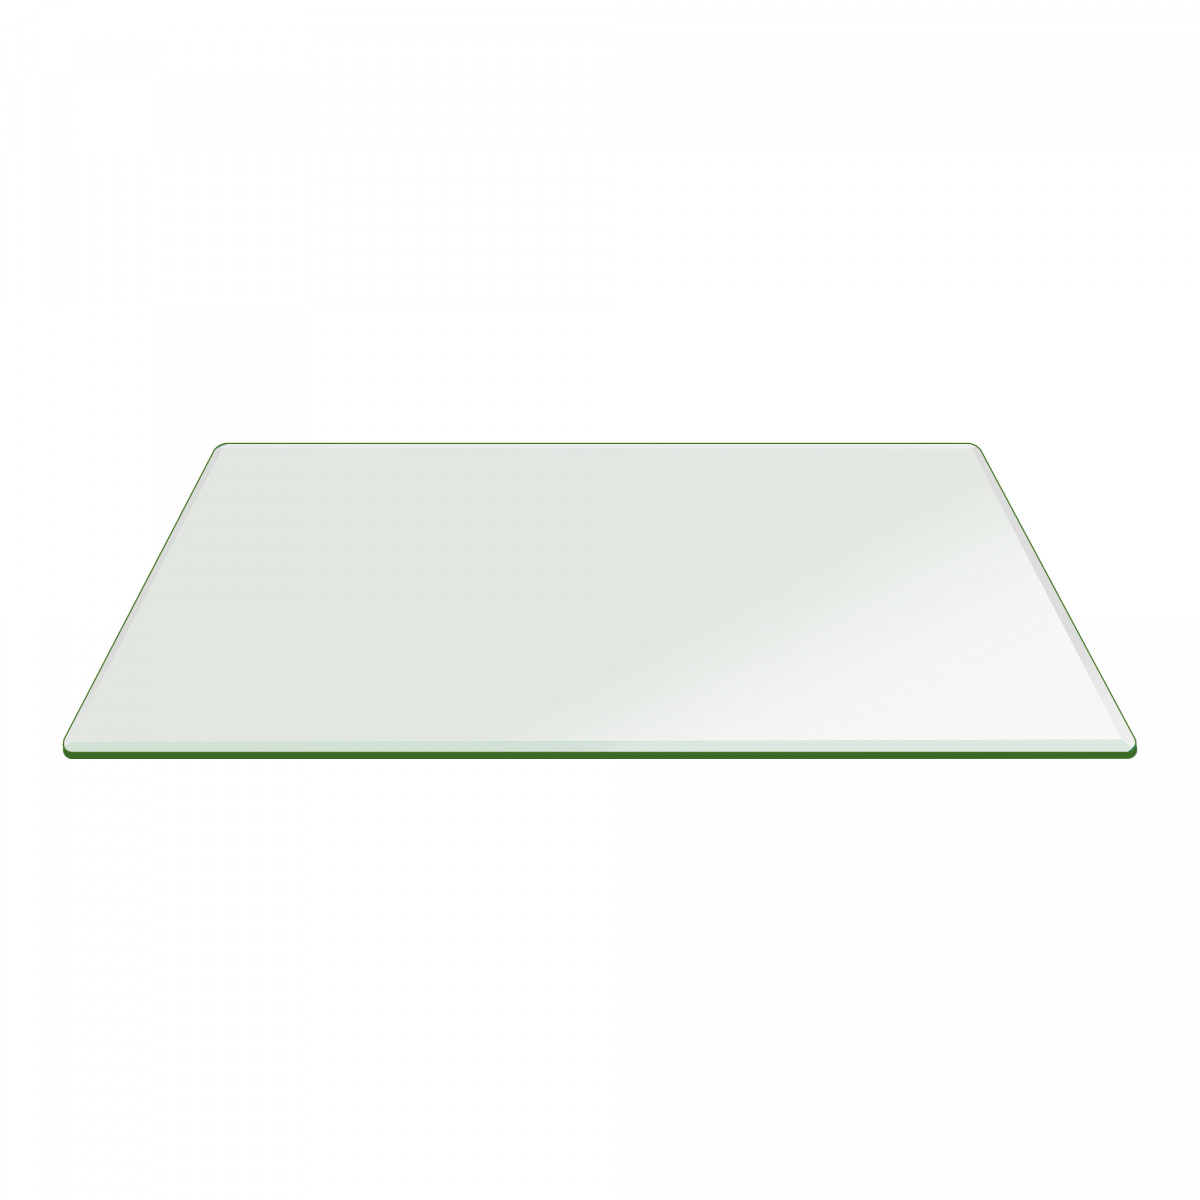 36 X 60 Inch Rectangle Glass Table Top 3 8 Inch Thick Clear Tempered Glass With Bevel Edge Polished Radius Corners Walmart Com Walmart Com